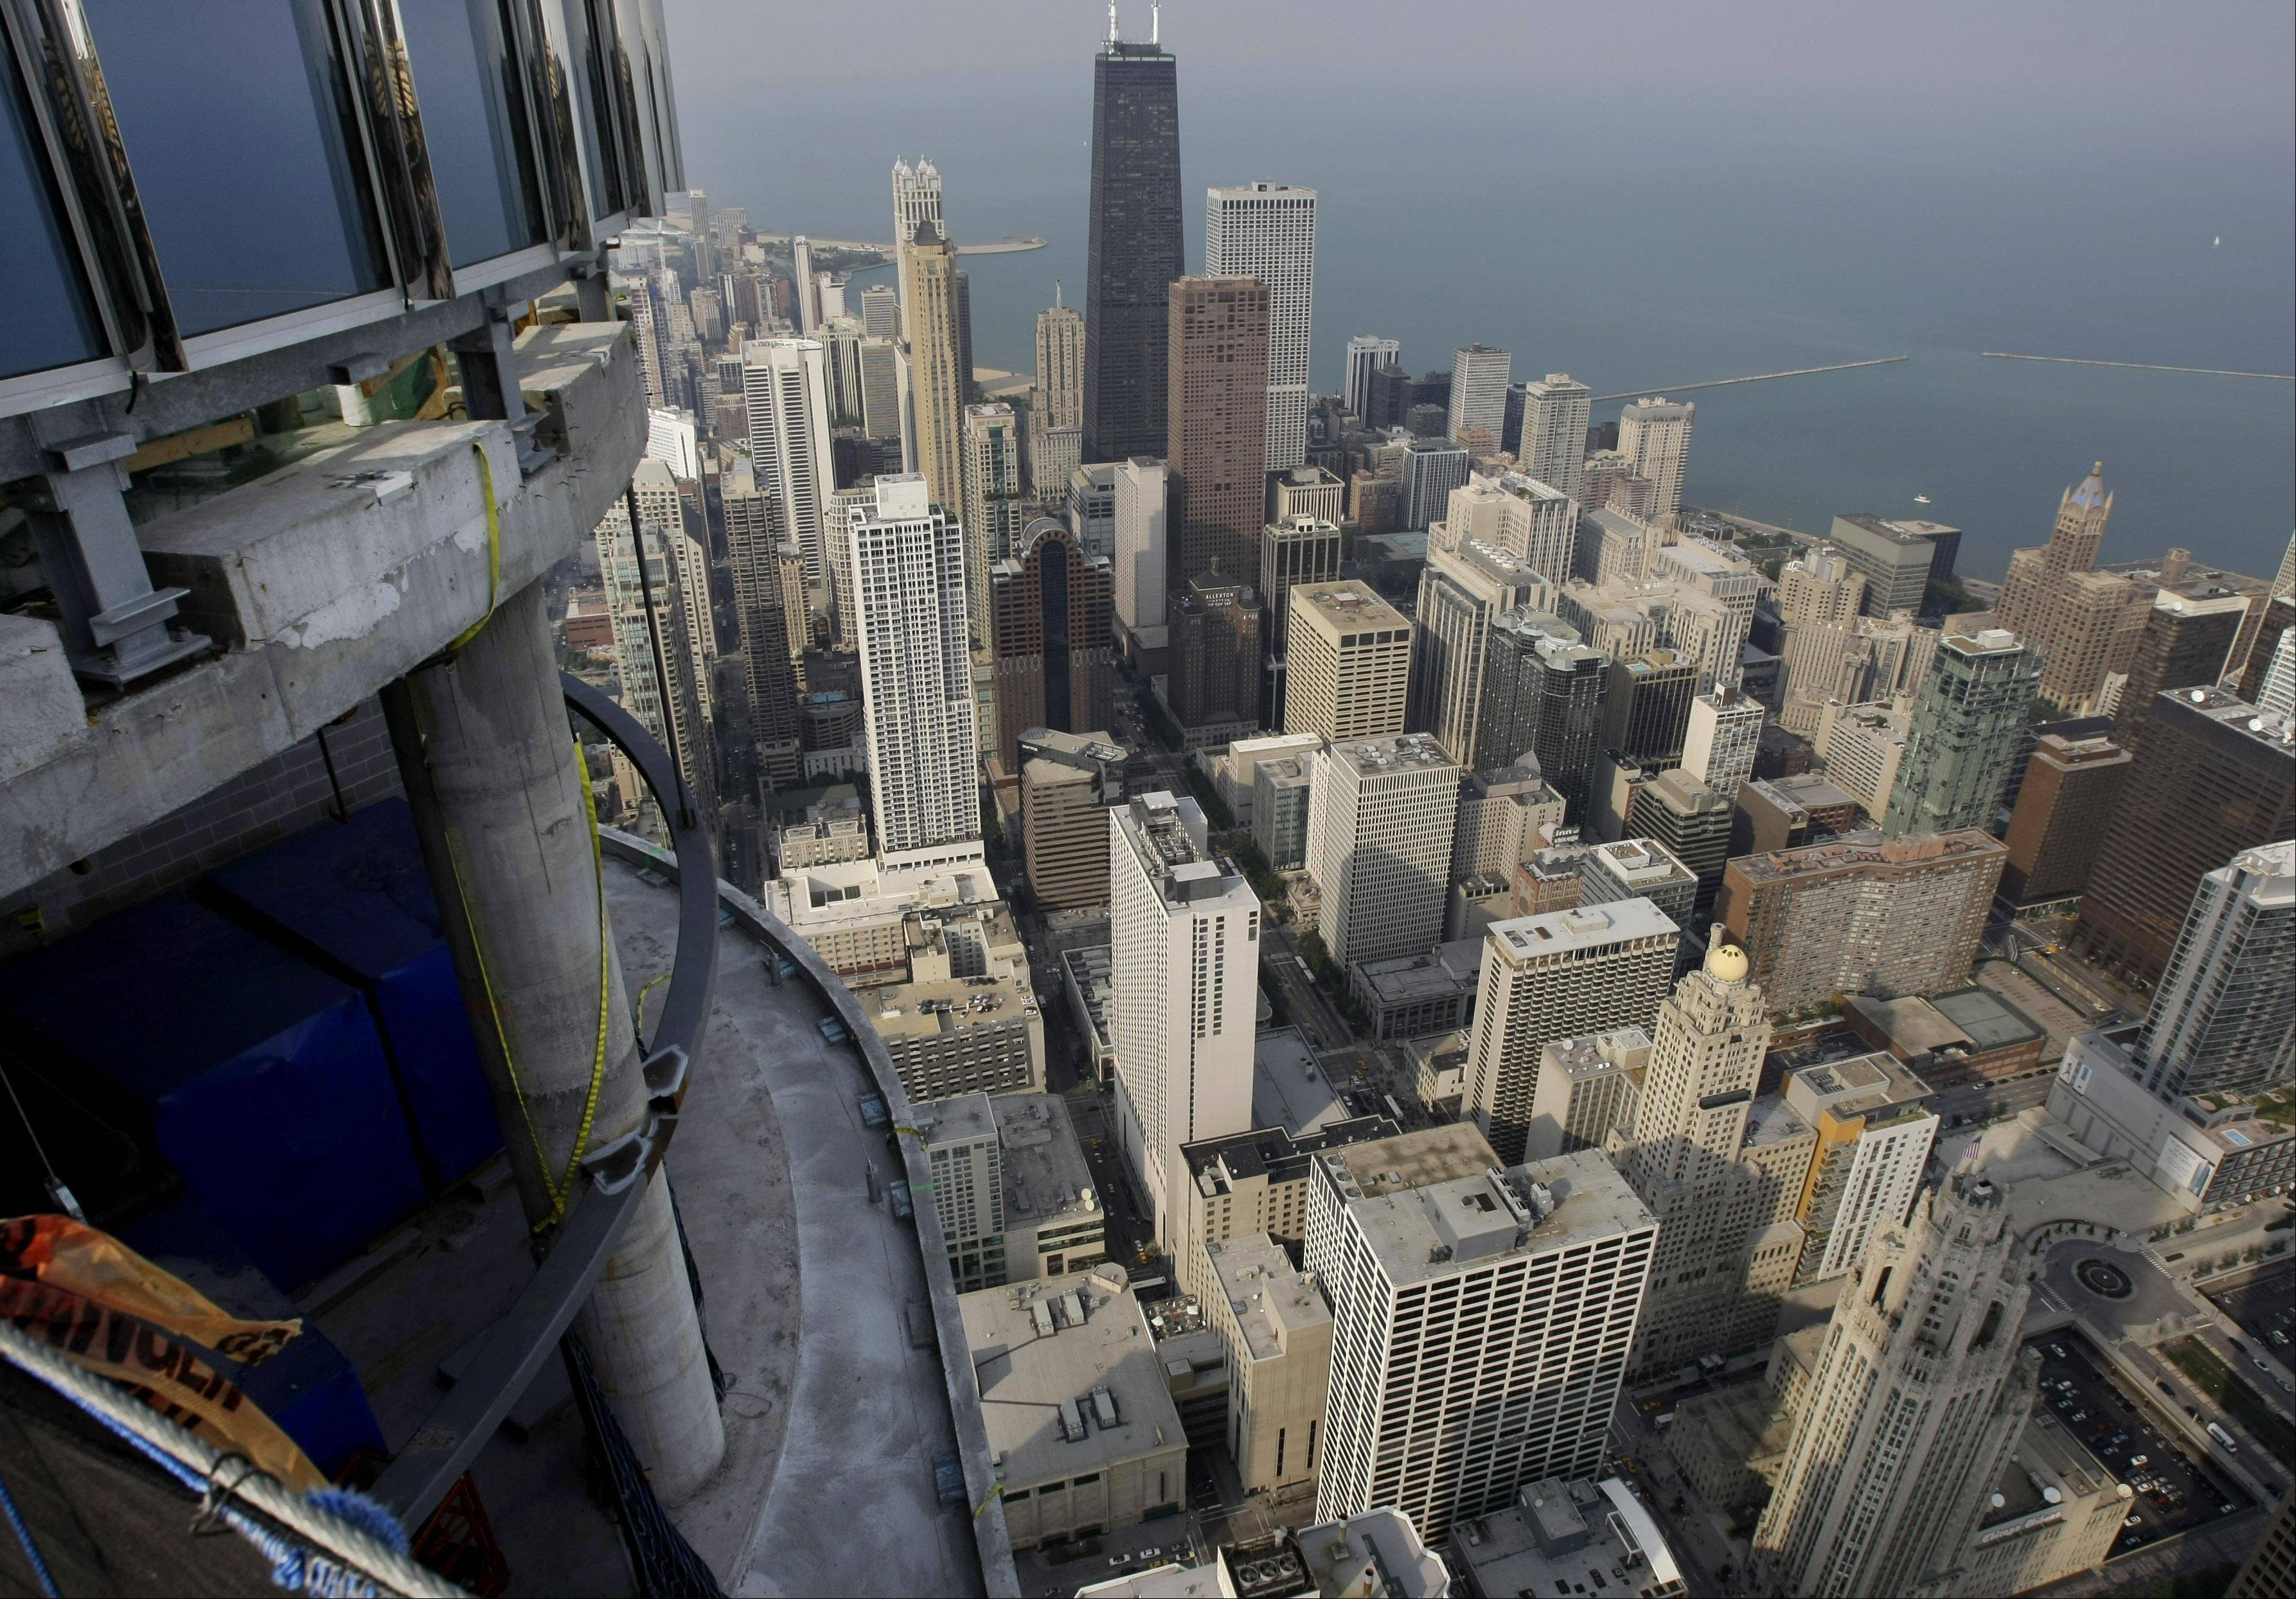 This is a view from the roof of the Trump International Hotel & Tower in Chicago